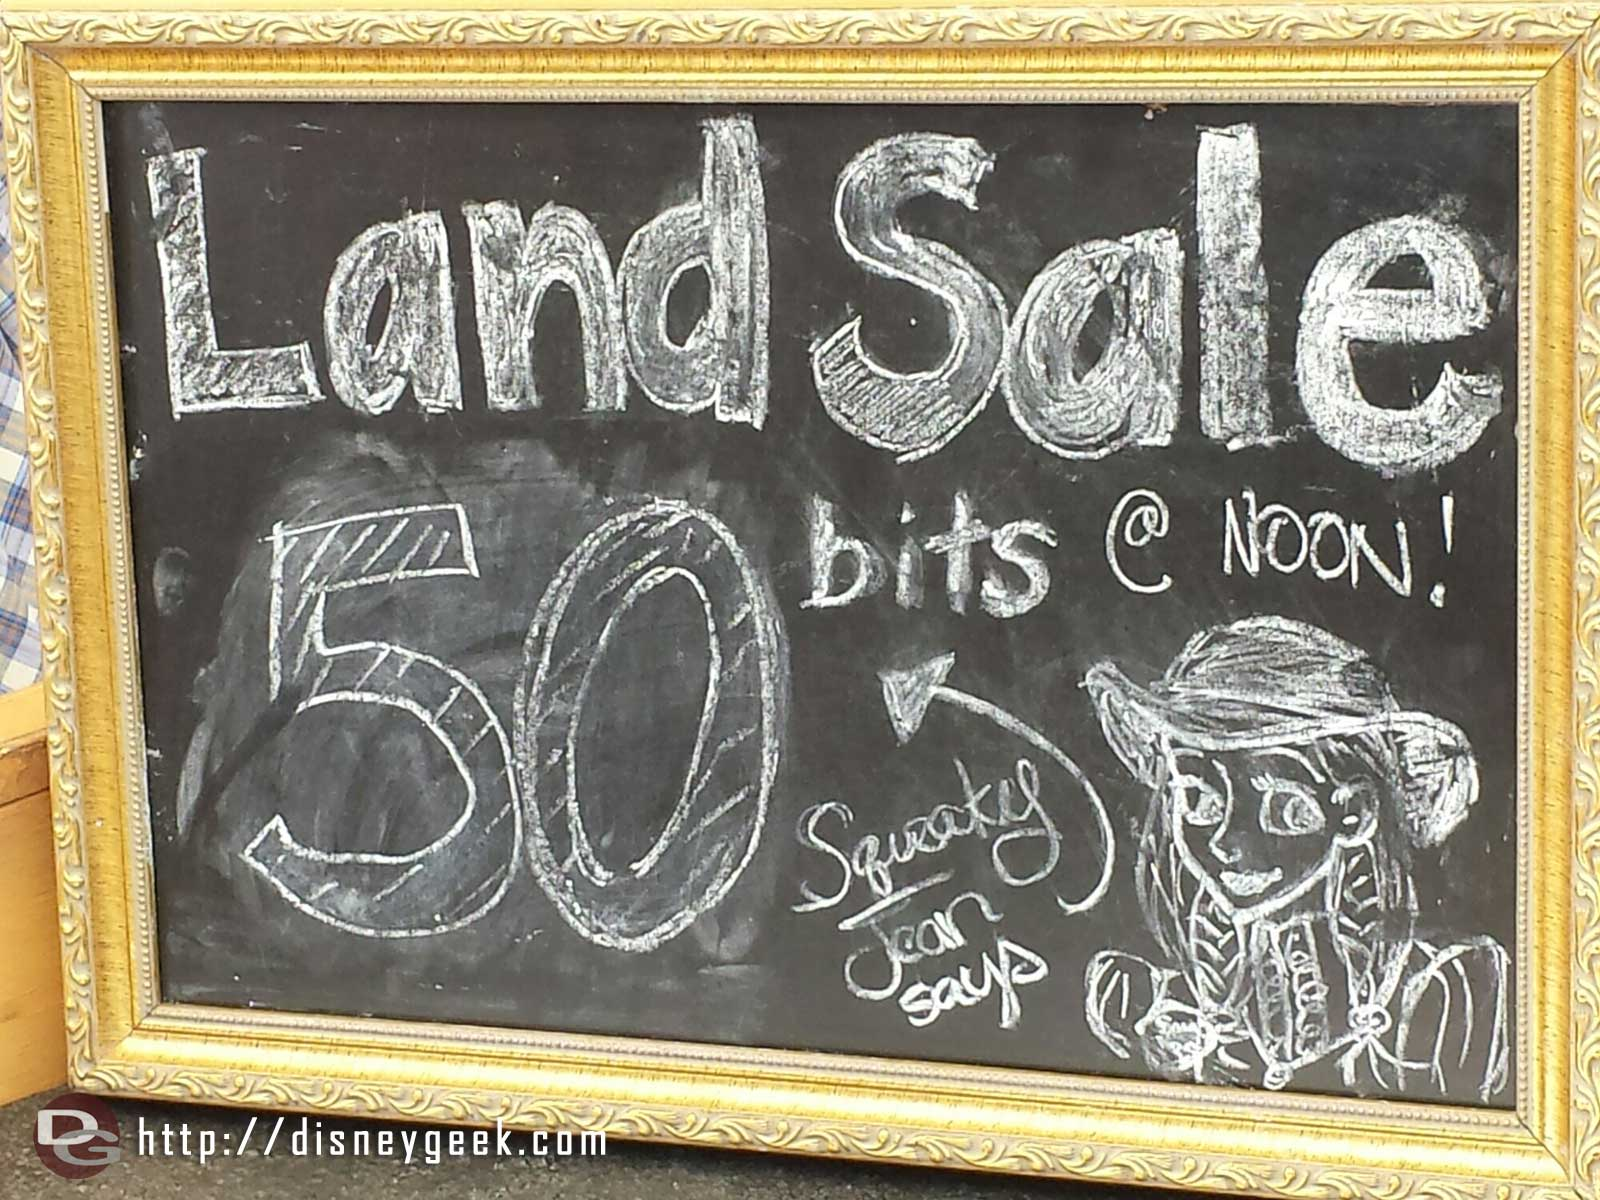 Legends of Frontierland is having a sale, 50 bits for land